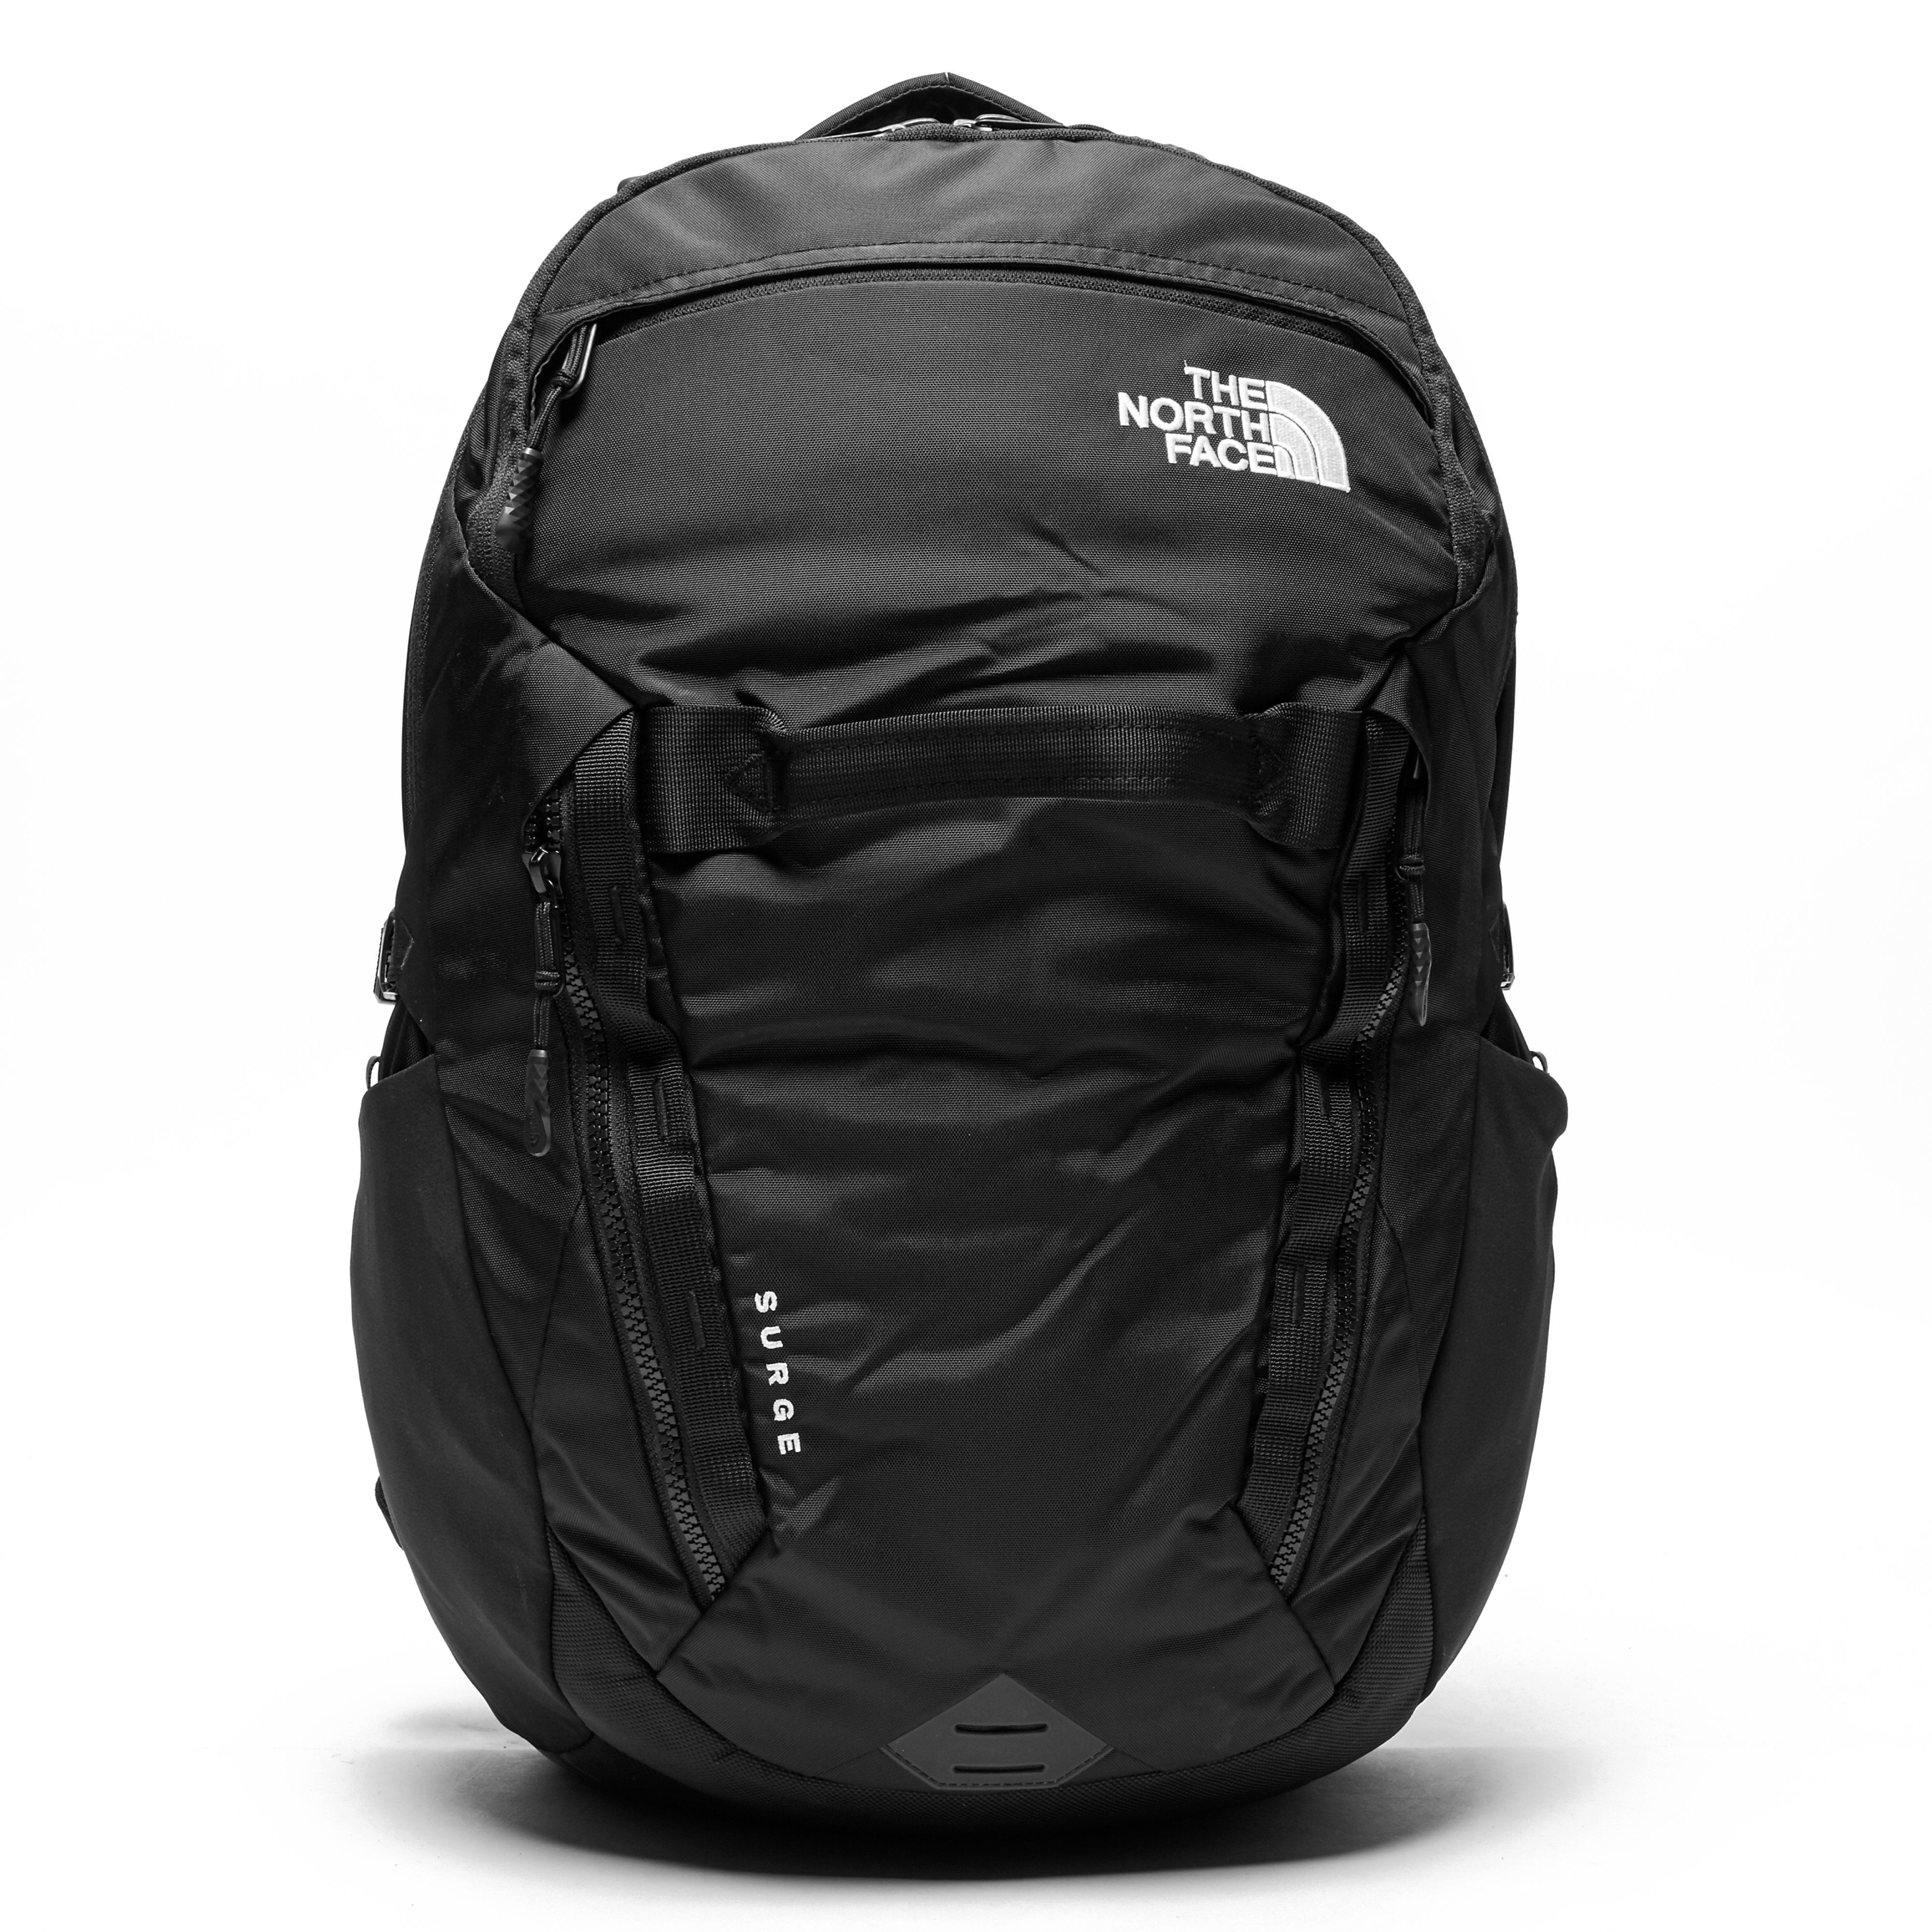 The North Face Surge 31L Backpack